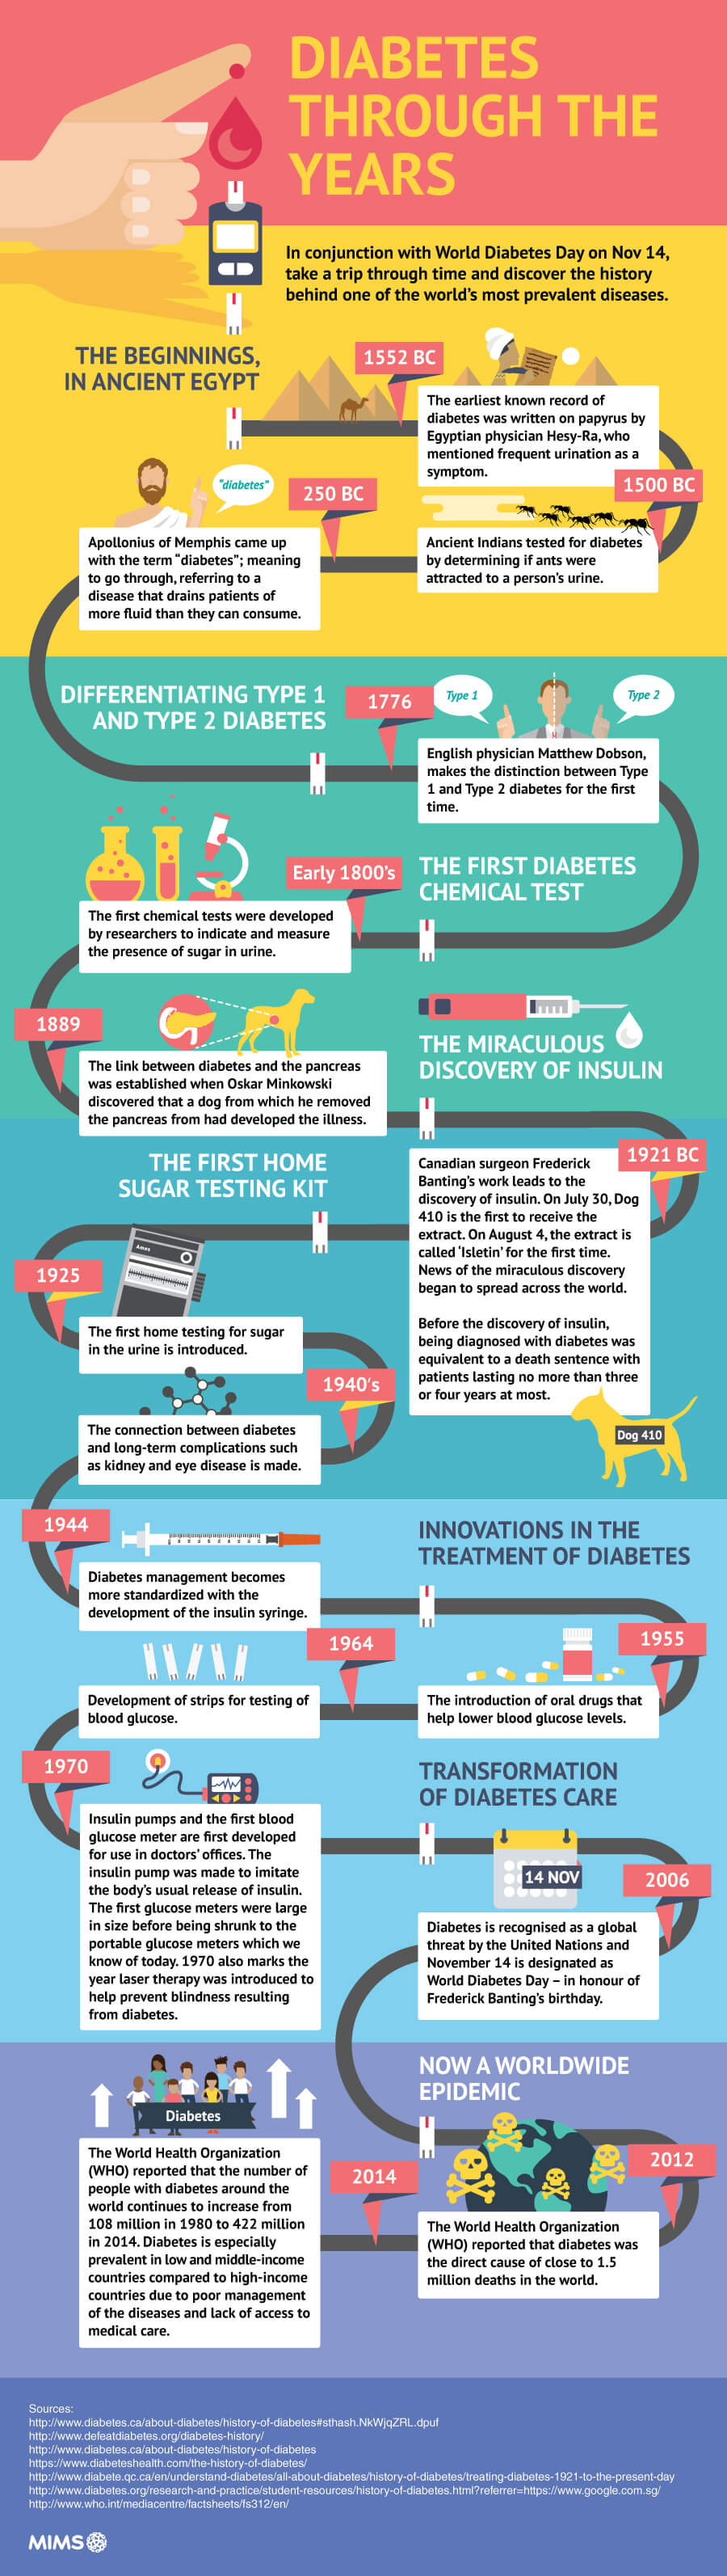 diabetes-through-the-years-infographic-plaza